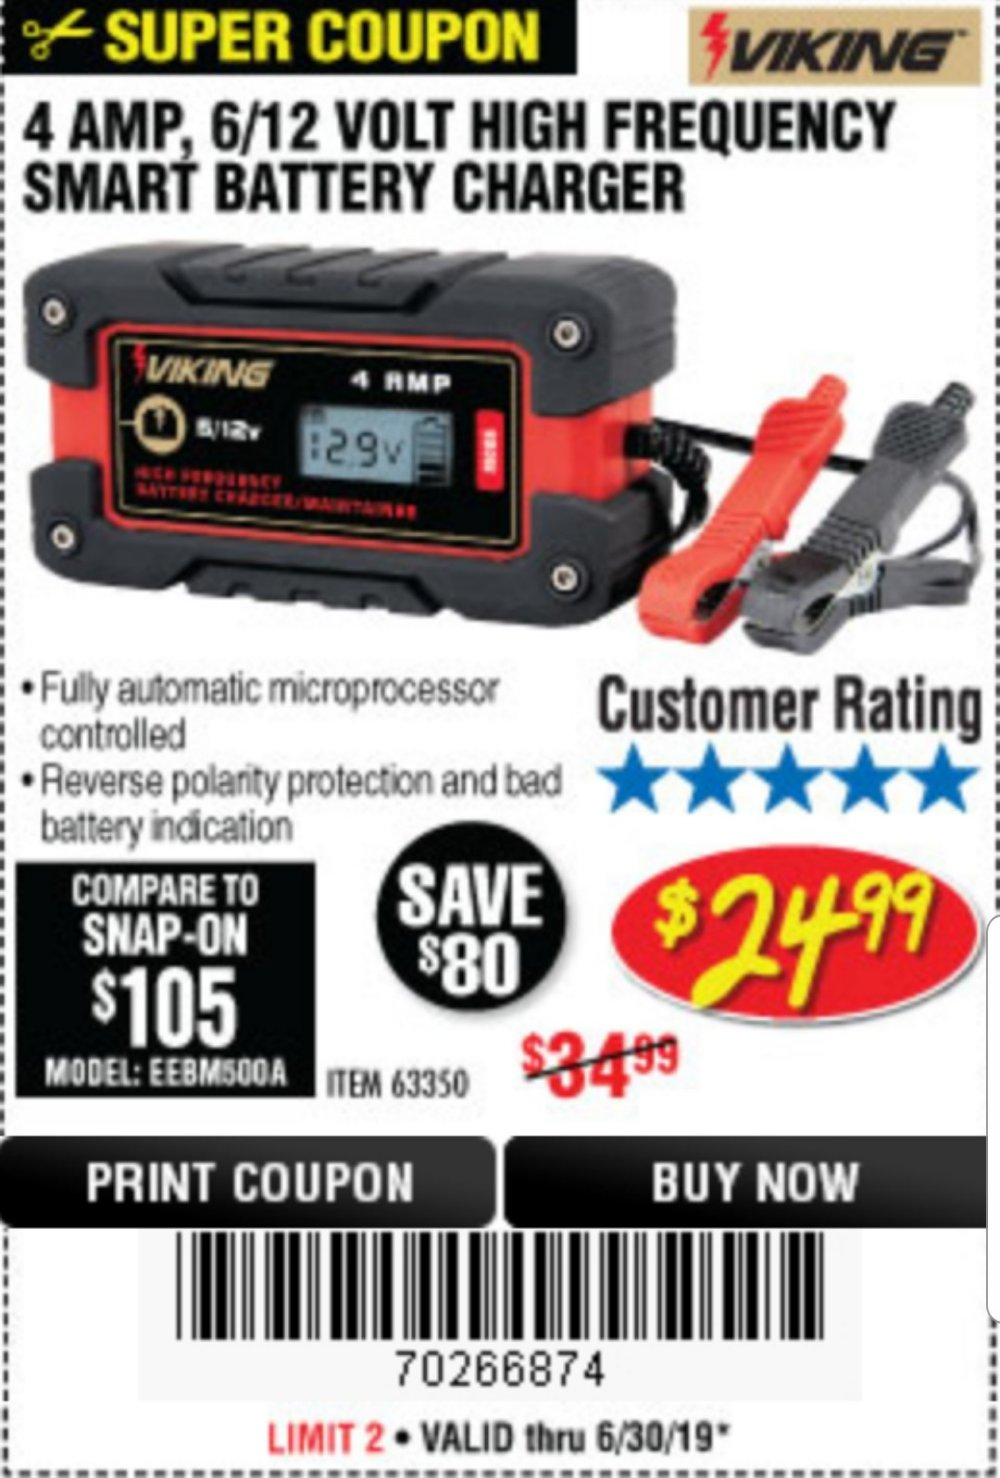 Harbor Freight Coupon, HF Coupons - 4 Amp Fully Automatic Microprocessor Controlled Battery Charger/maintainer